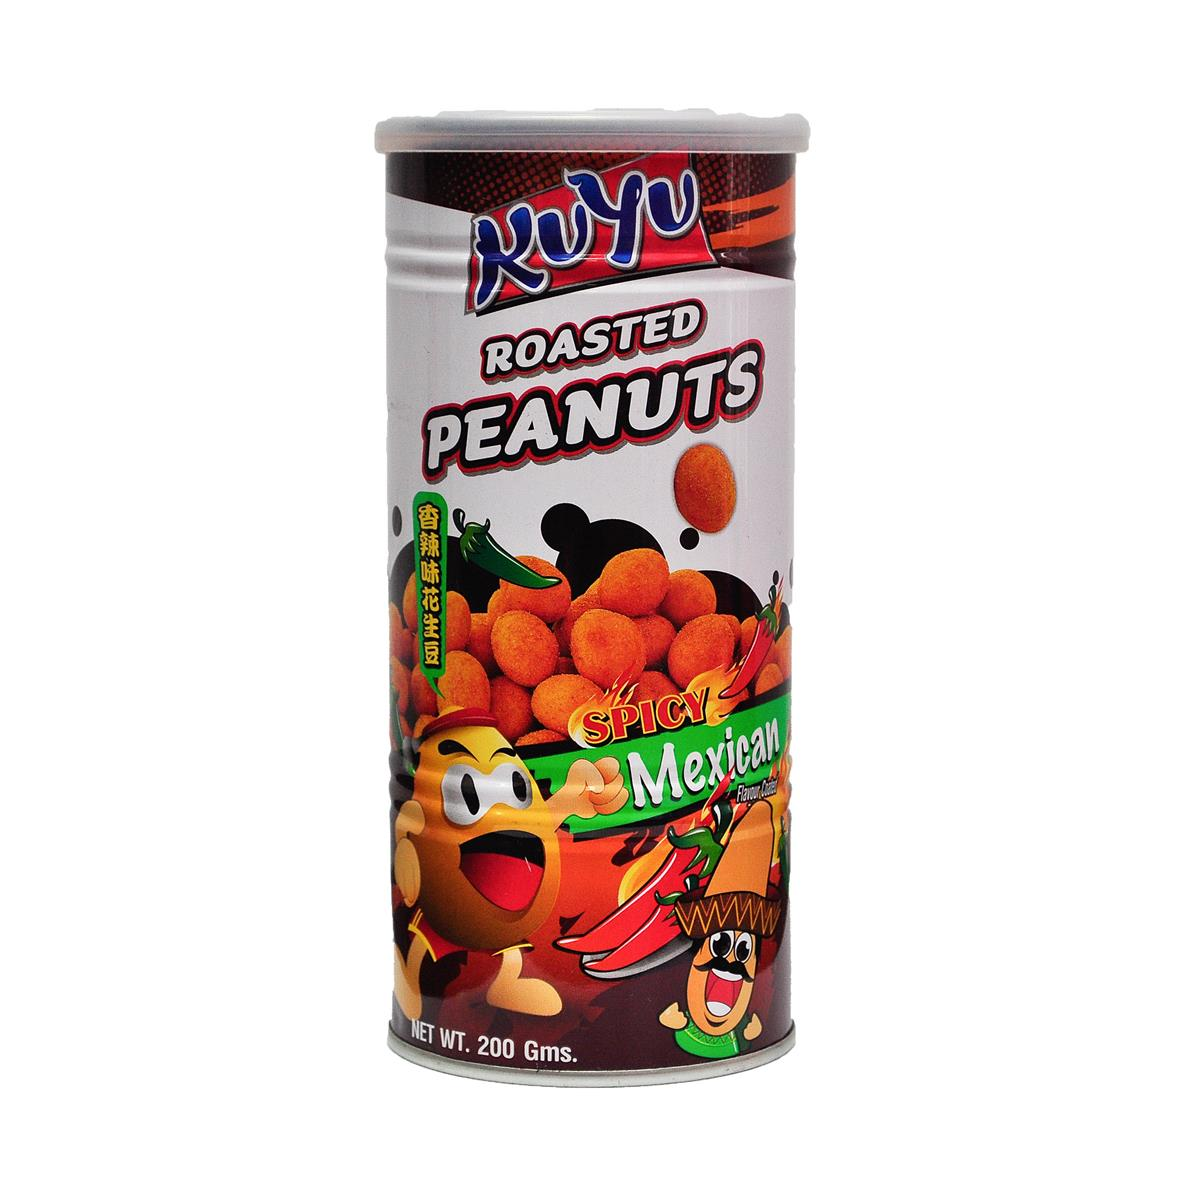 Kuyu Roasted Peanut Spicy Mexican 200g